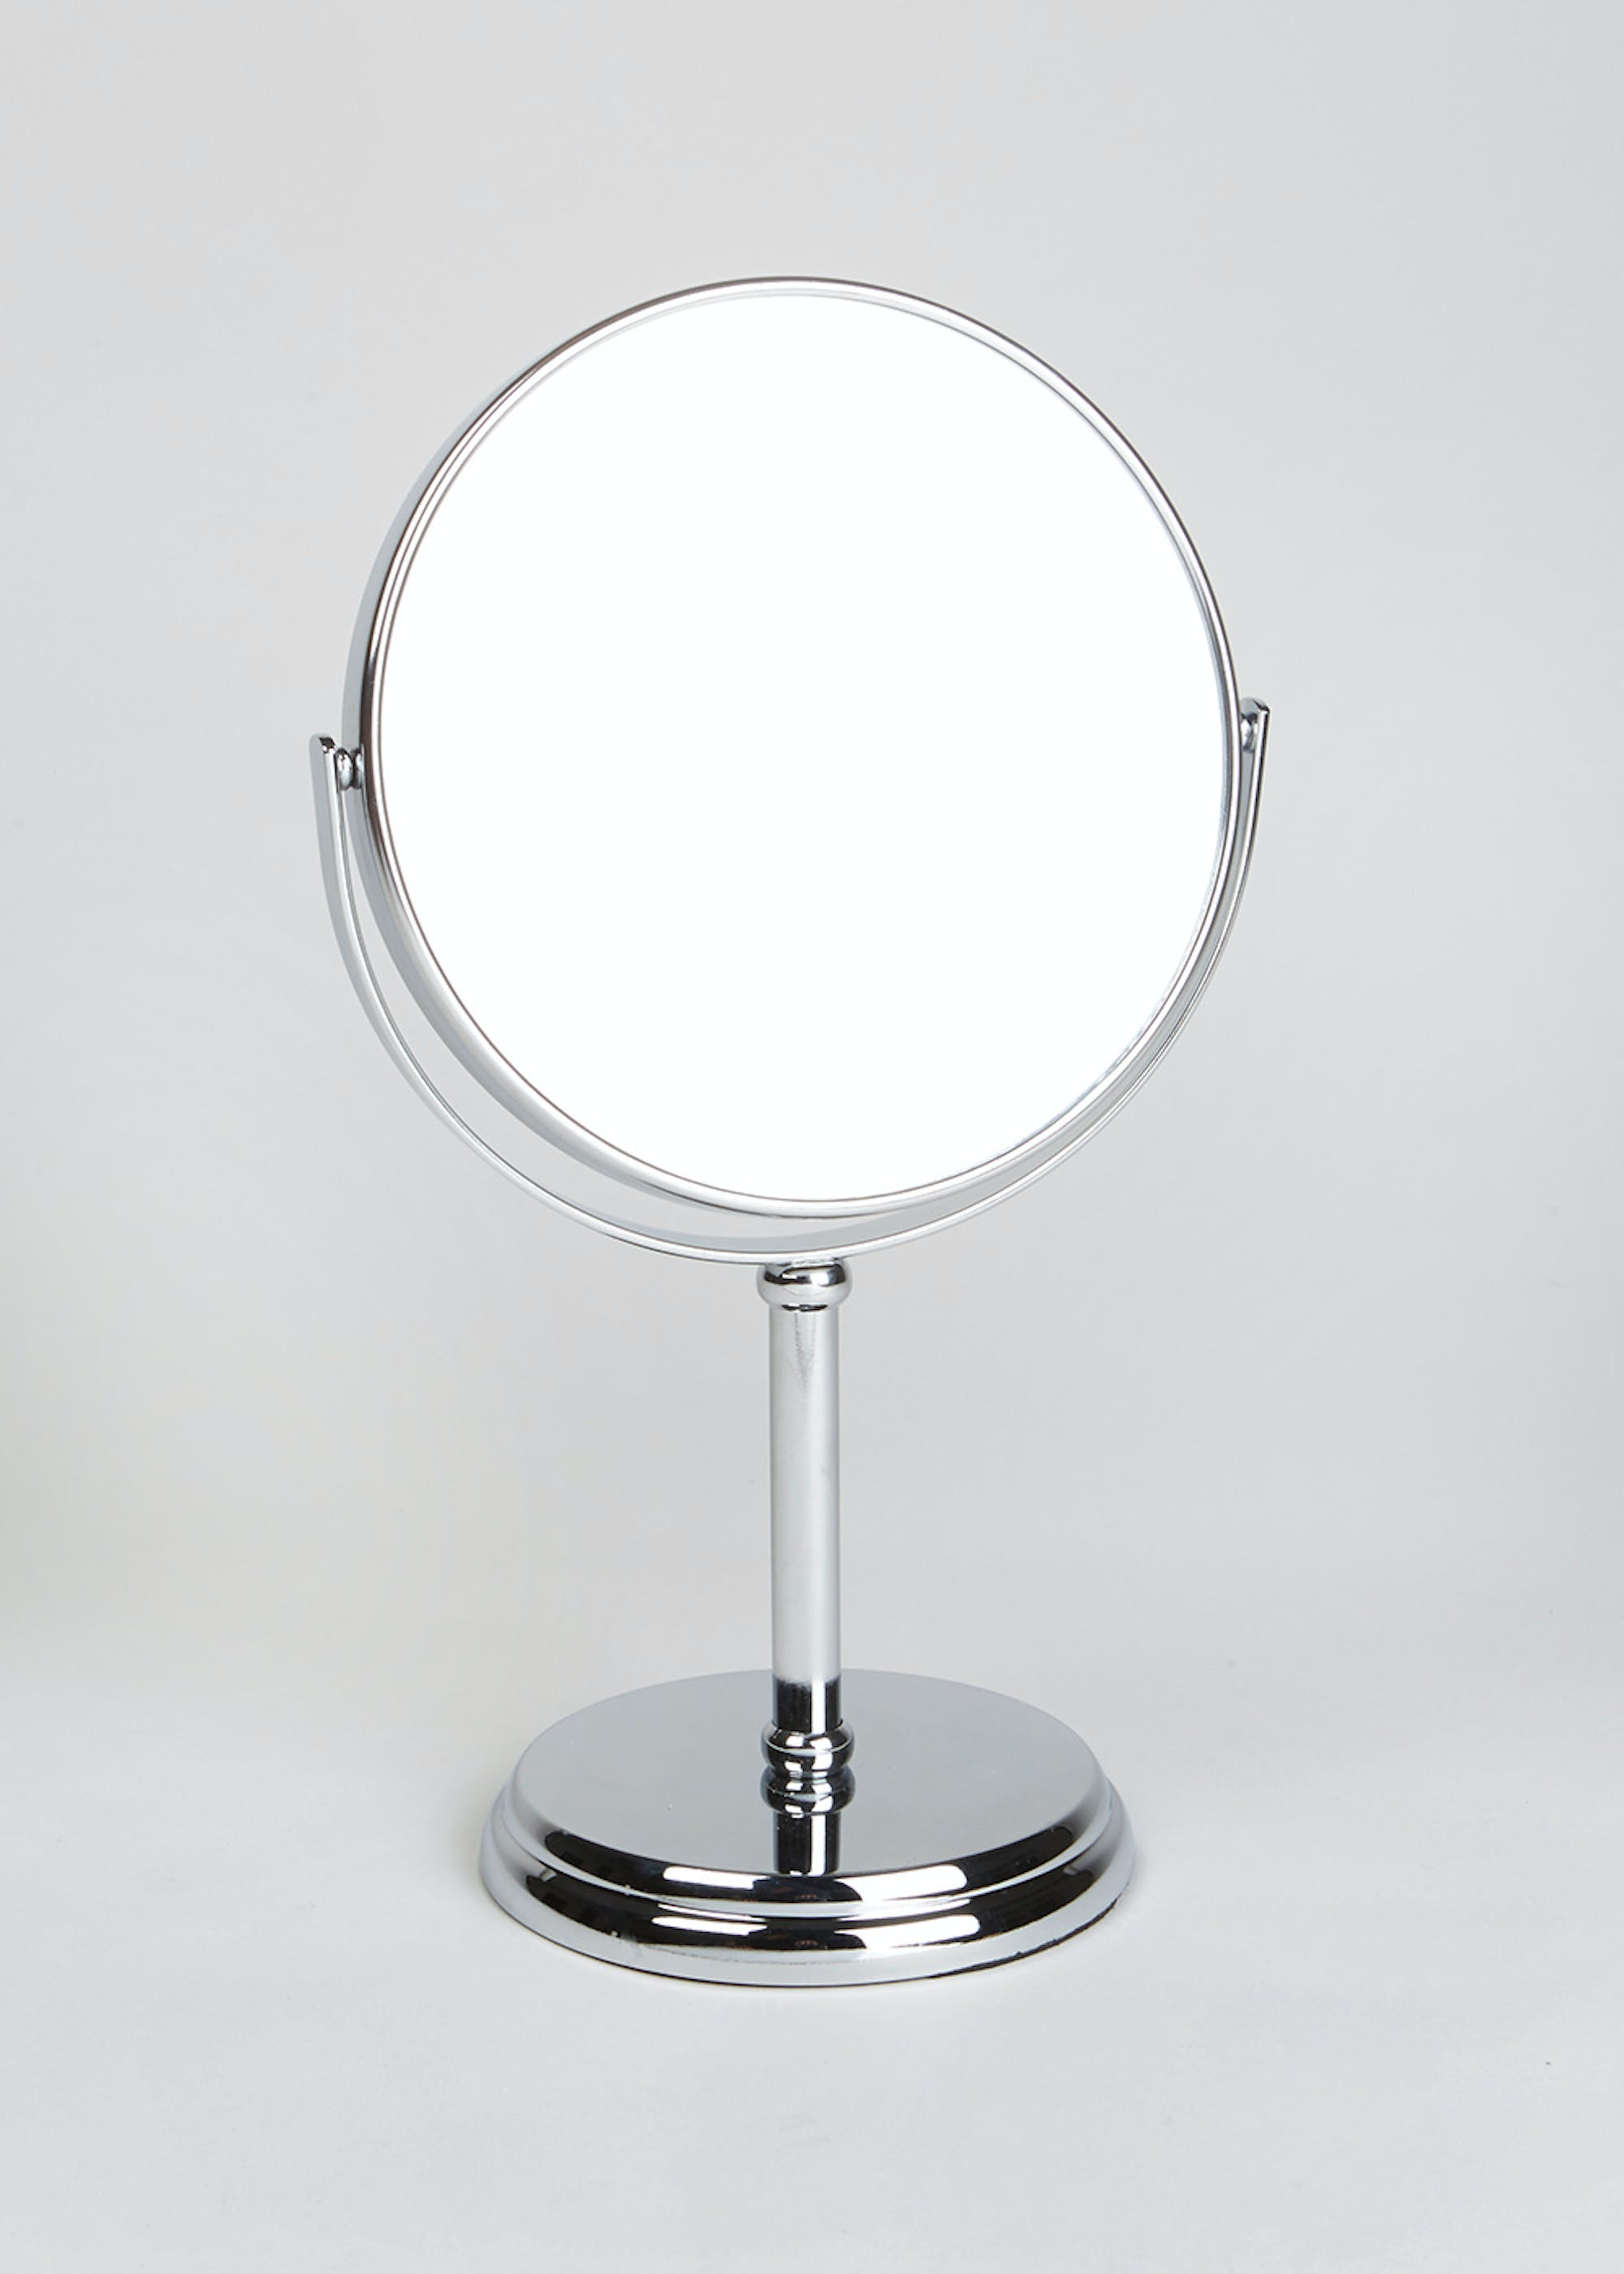 Double Sided Pedestal Mirror (30cm x 17cm) Silver 4jLDC7